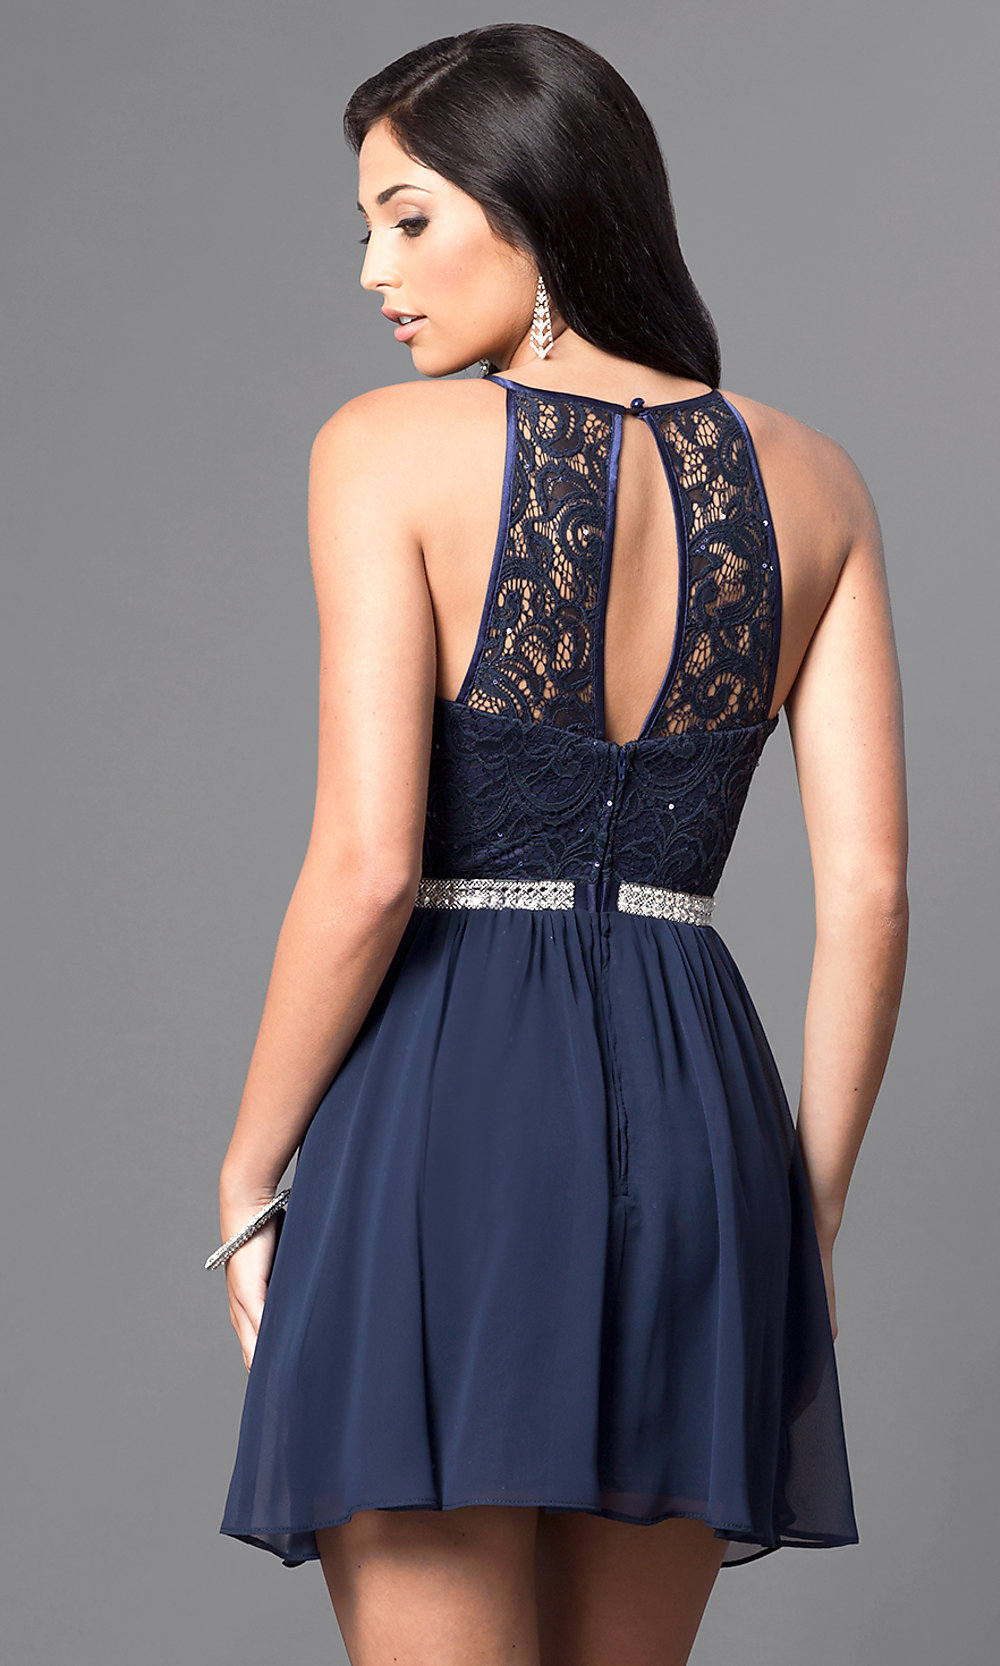 Short Navy Blue Lace Homecoming Dress - PromGirl